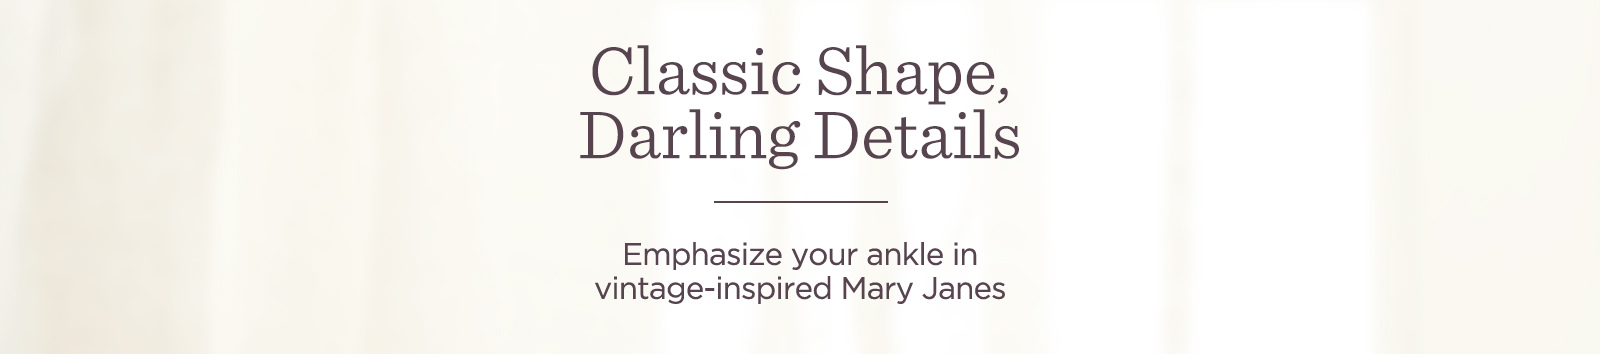 Classic Shape, Darling Details   Emphasize your ankle in vintage-inspired Mary Janes